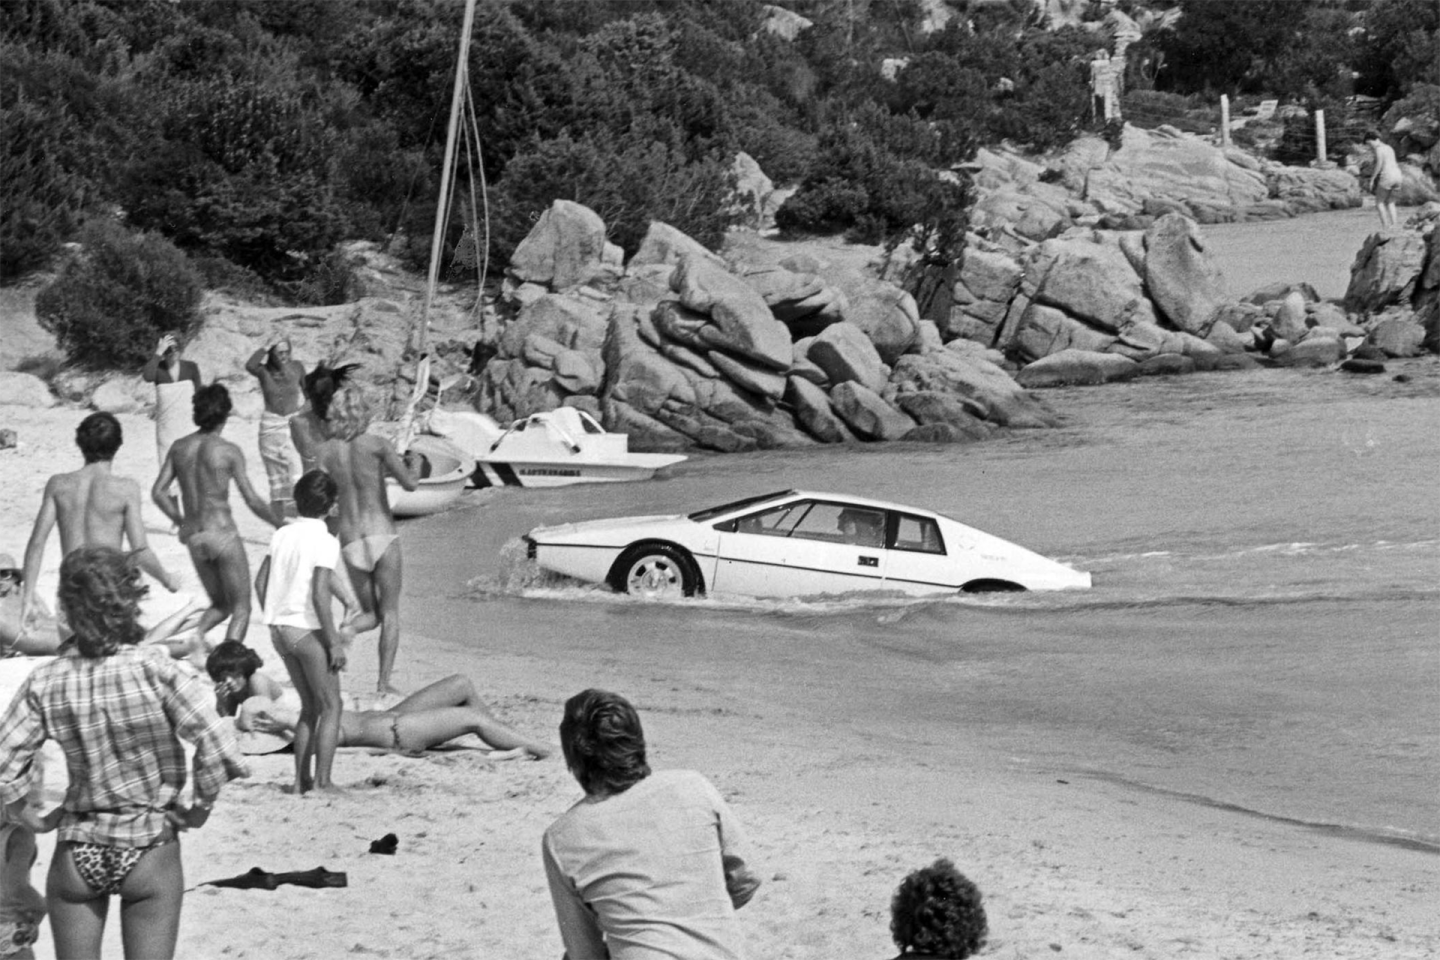 The Lotus Esprit submarine car became almost as famous as the original gadget-festooned James Bond Aston Martin DB5. The fully-functioning custom submarine in the shape of a Lotus Esprit S1 sports car was built just for the movie and created a sensation on the silver screen when it was used by MI6 Agent 007 (Roger Moore) to escape the villains in the 1977 movie The Spy Who Loved Me. The submarine was sold at auction by RM-Sotheby's in London in 2013 for £616,000 with the mystery buyer eventually confirmed as Tesla boss Elon Musk.